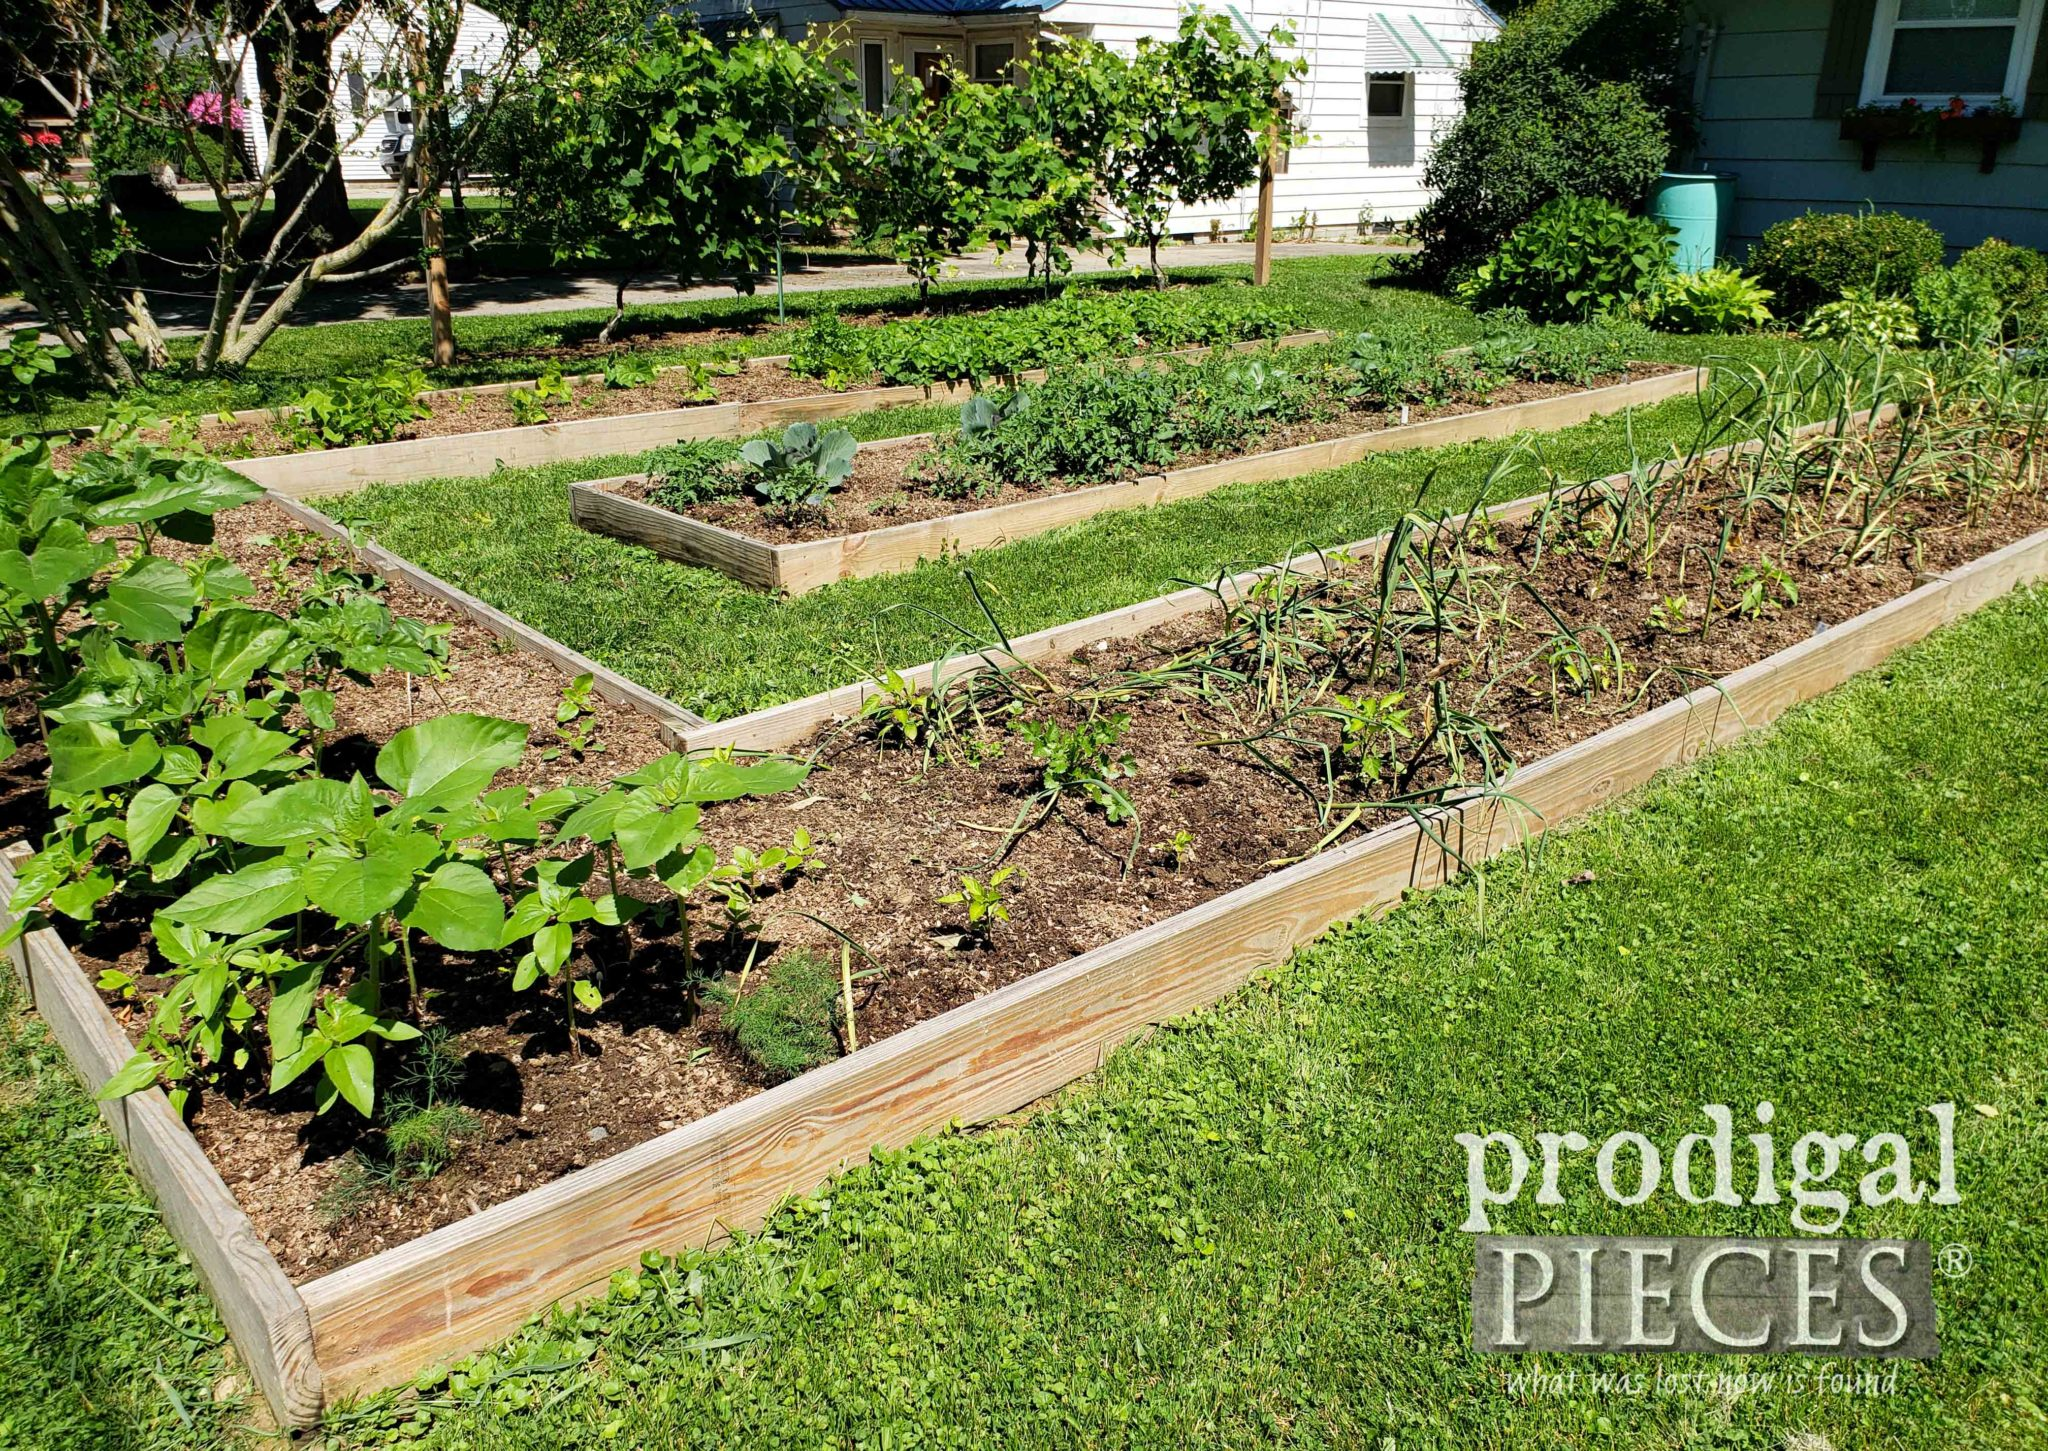 City Lot with DIY Raised Bed Gardens | Video Tour at prodigalpieces.com #prodigalpieces #diy #garden #food